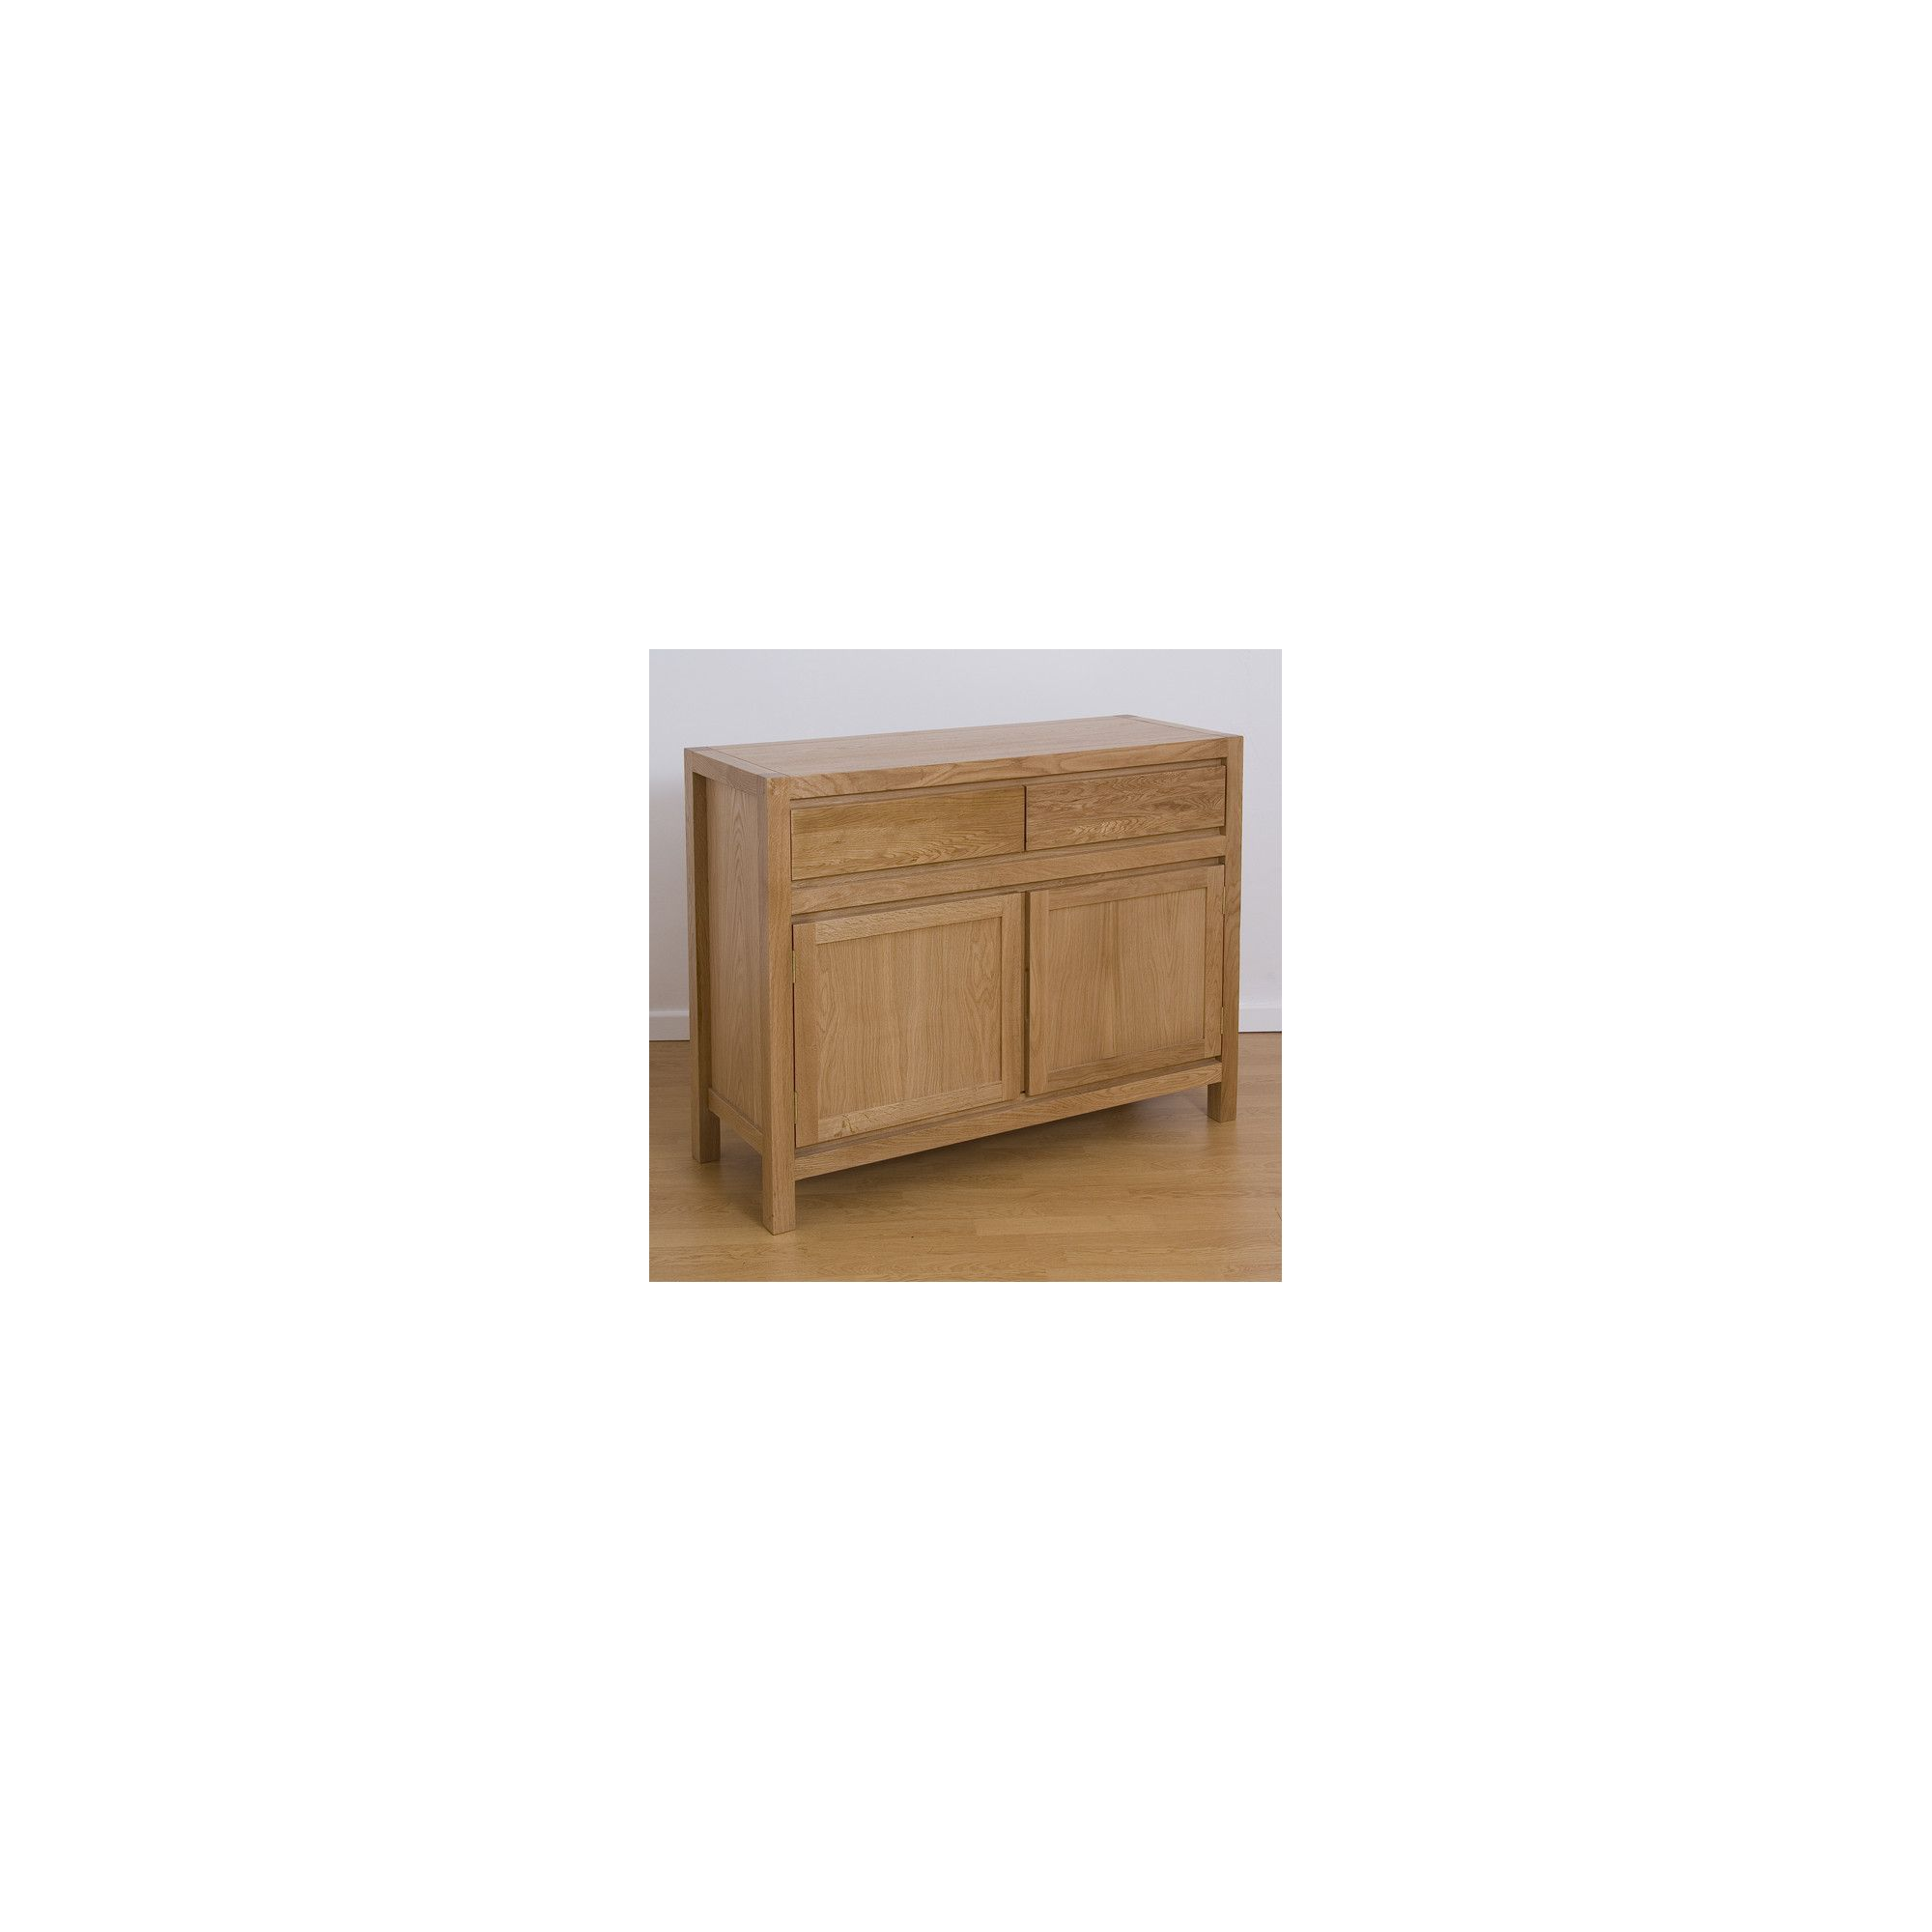 G&P Furniture Small Oak Sideboard at Tesco Direct